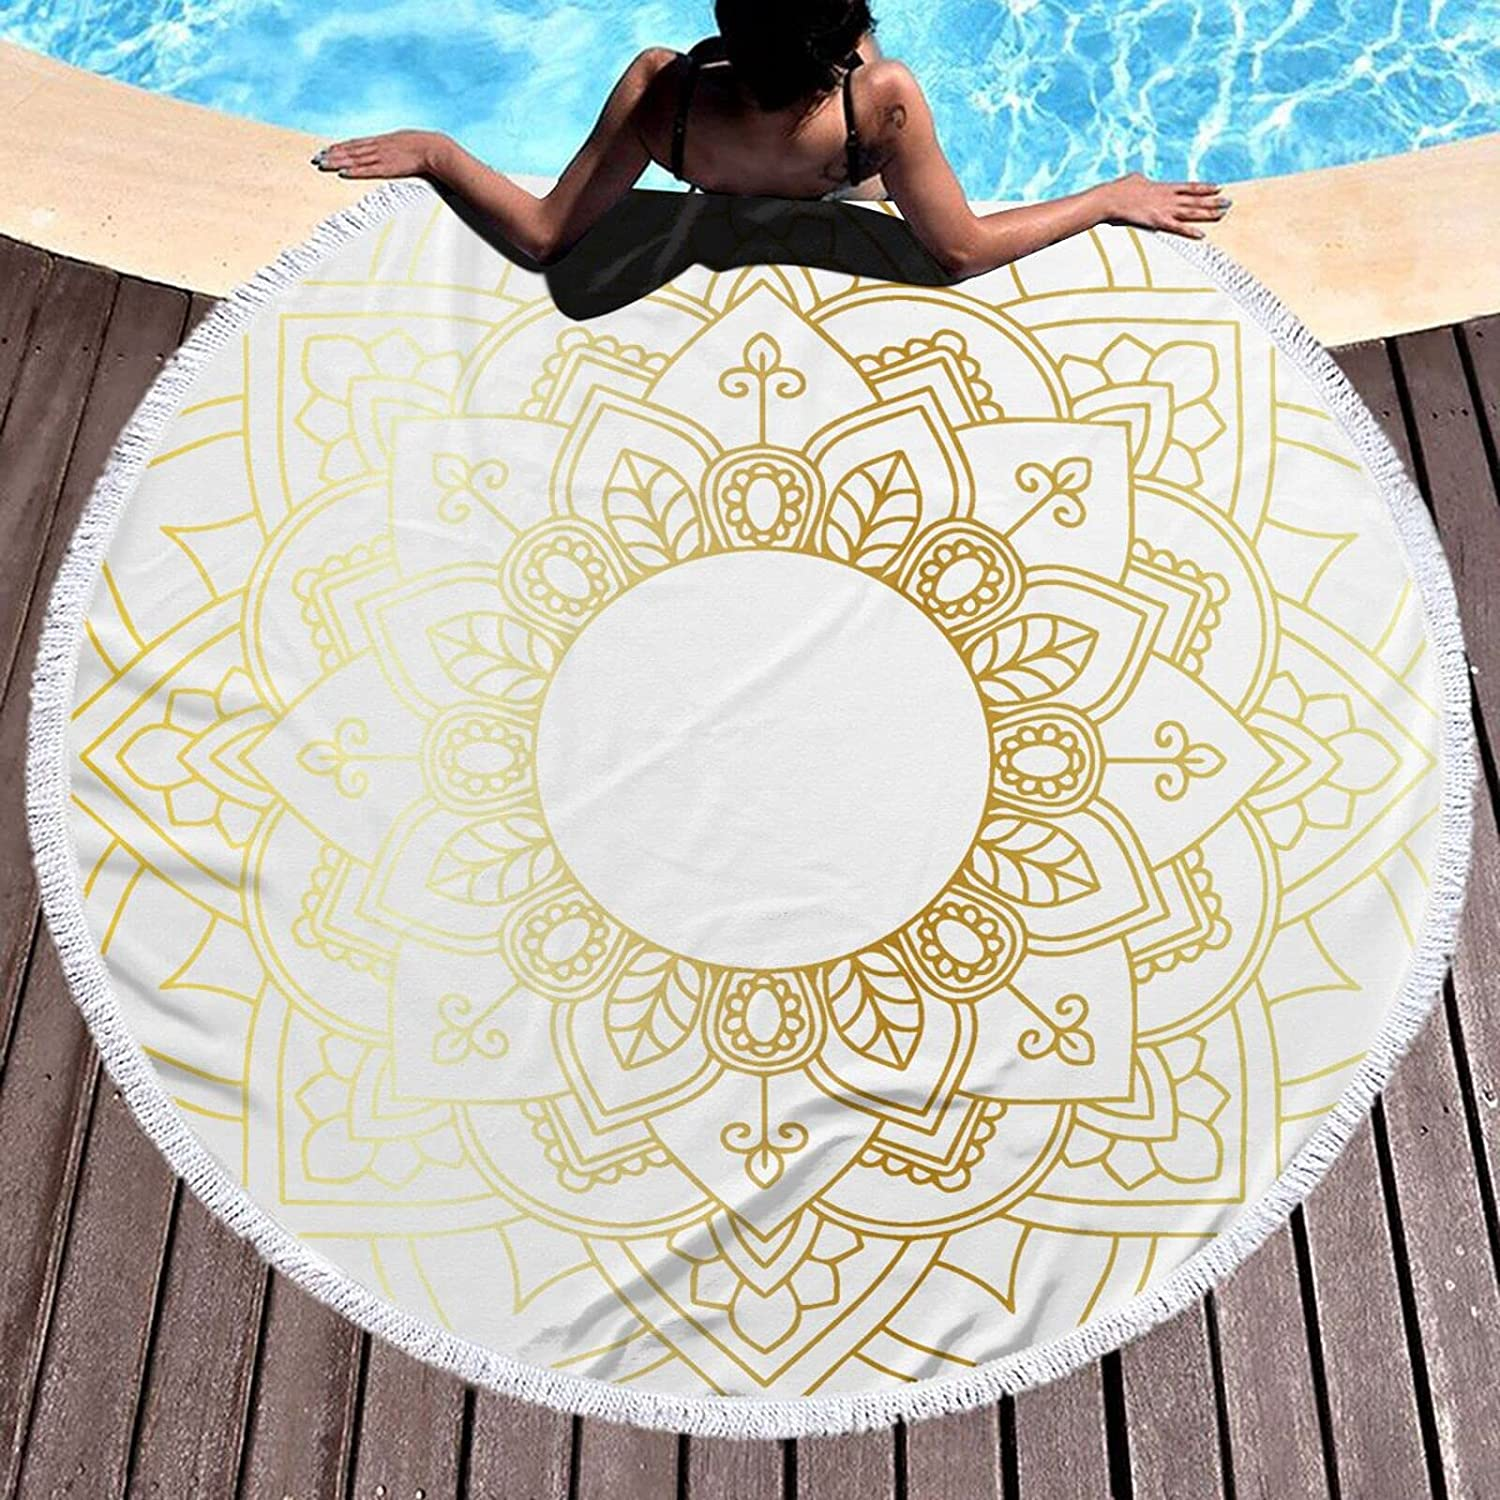 Bohemian Outstanding Goldenmicrofiber Round Large Towel Now free shipping Plush Blanket Beach